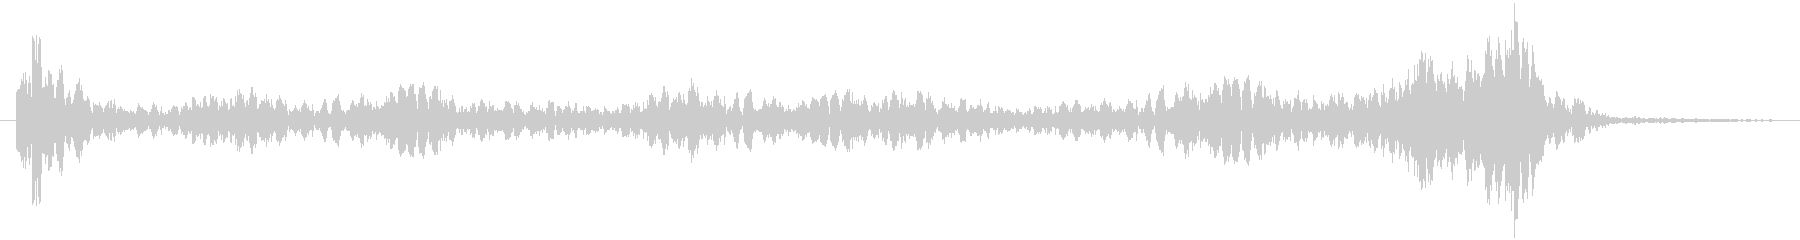 Movie-style, Epic, tense drum roll's unreproduced waveform